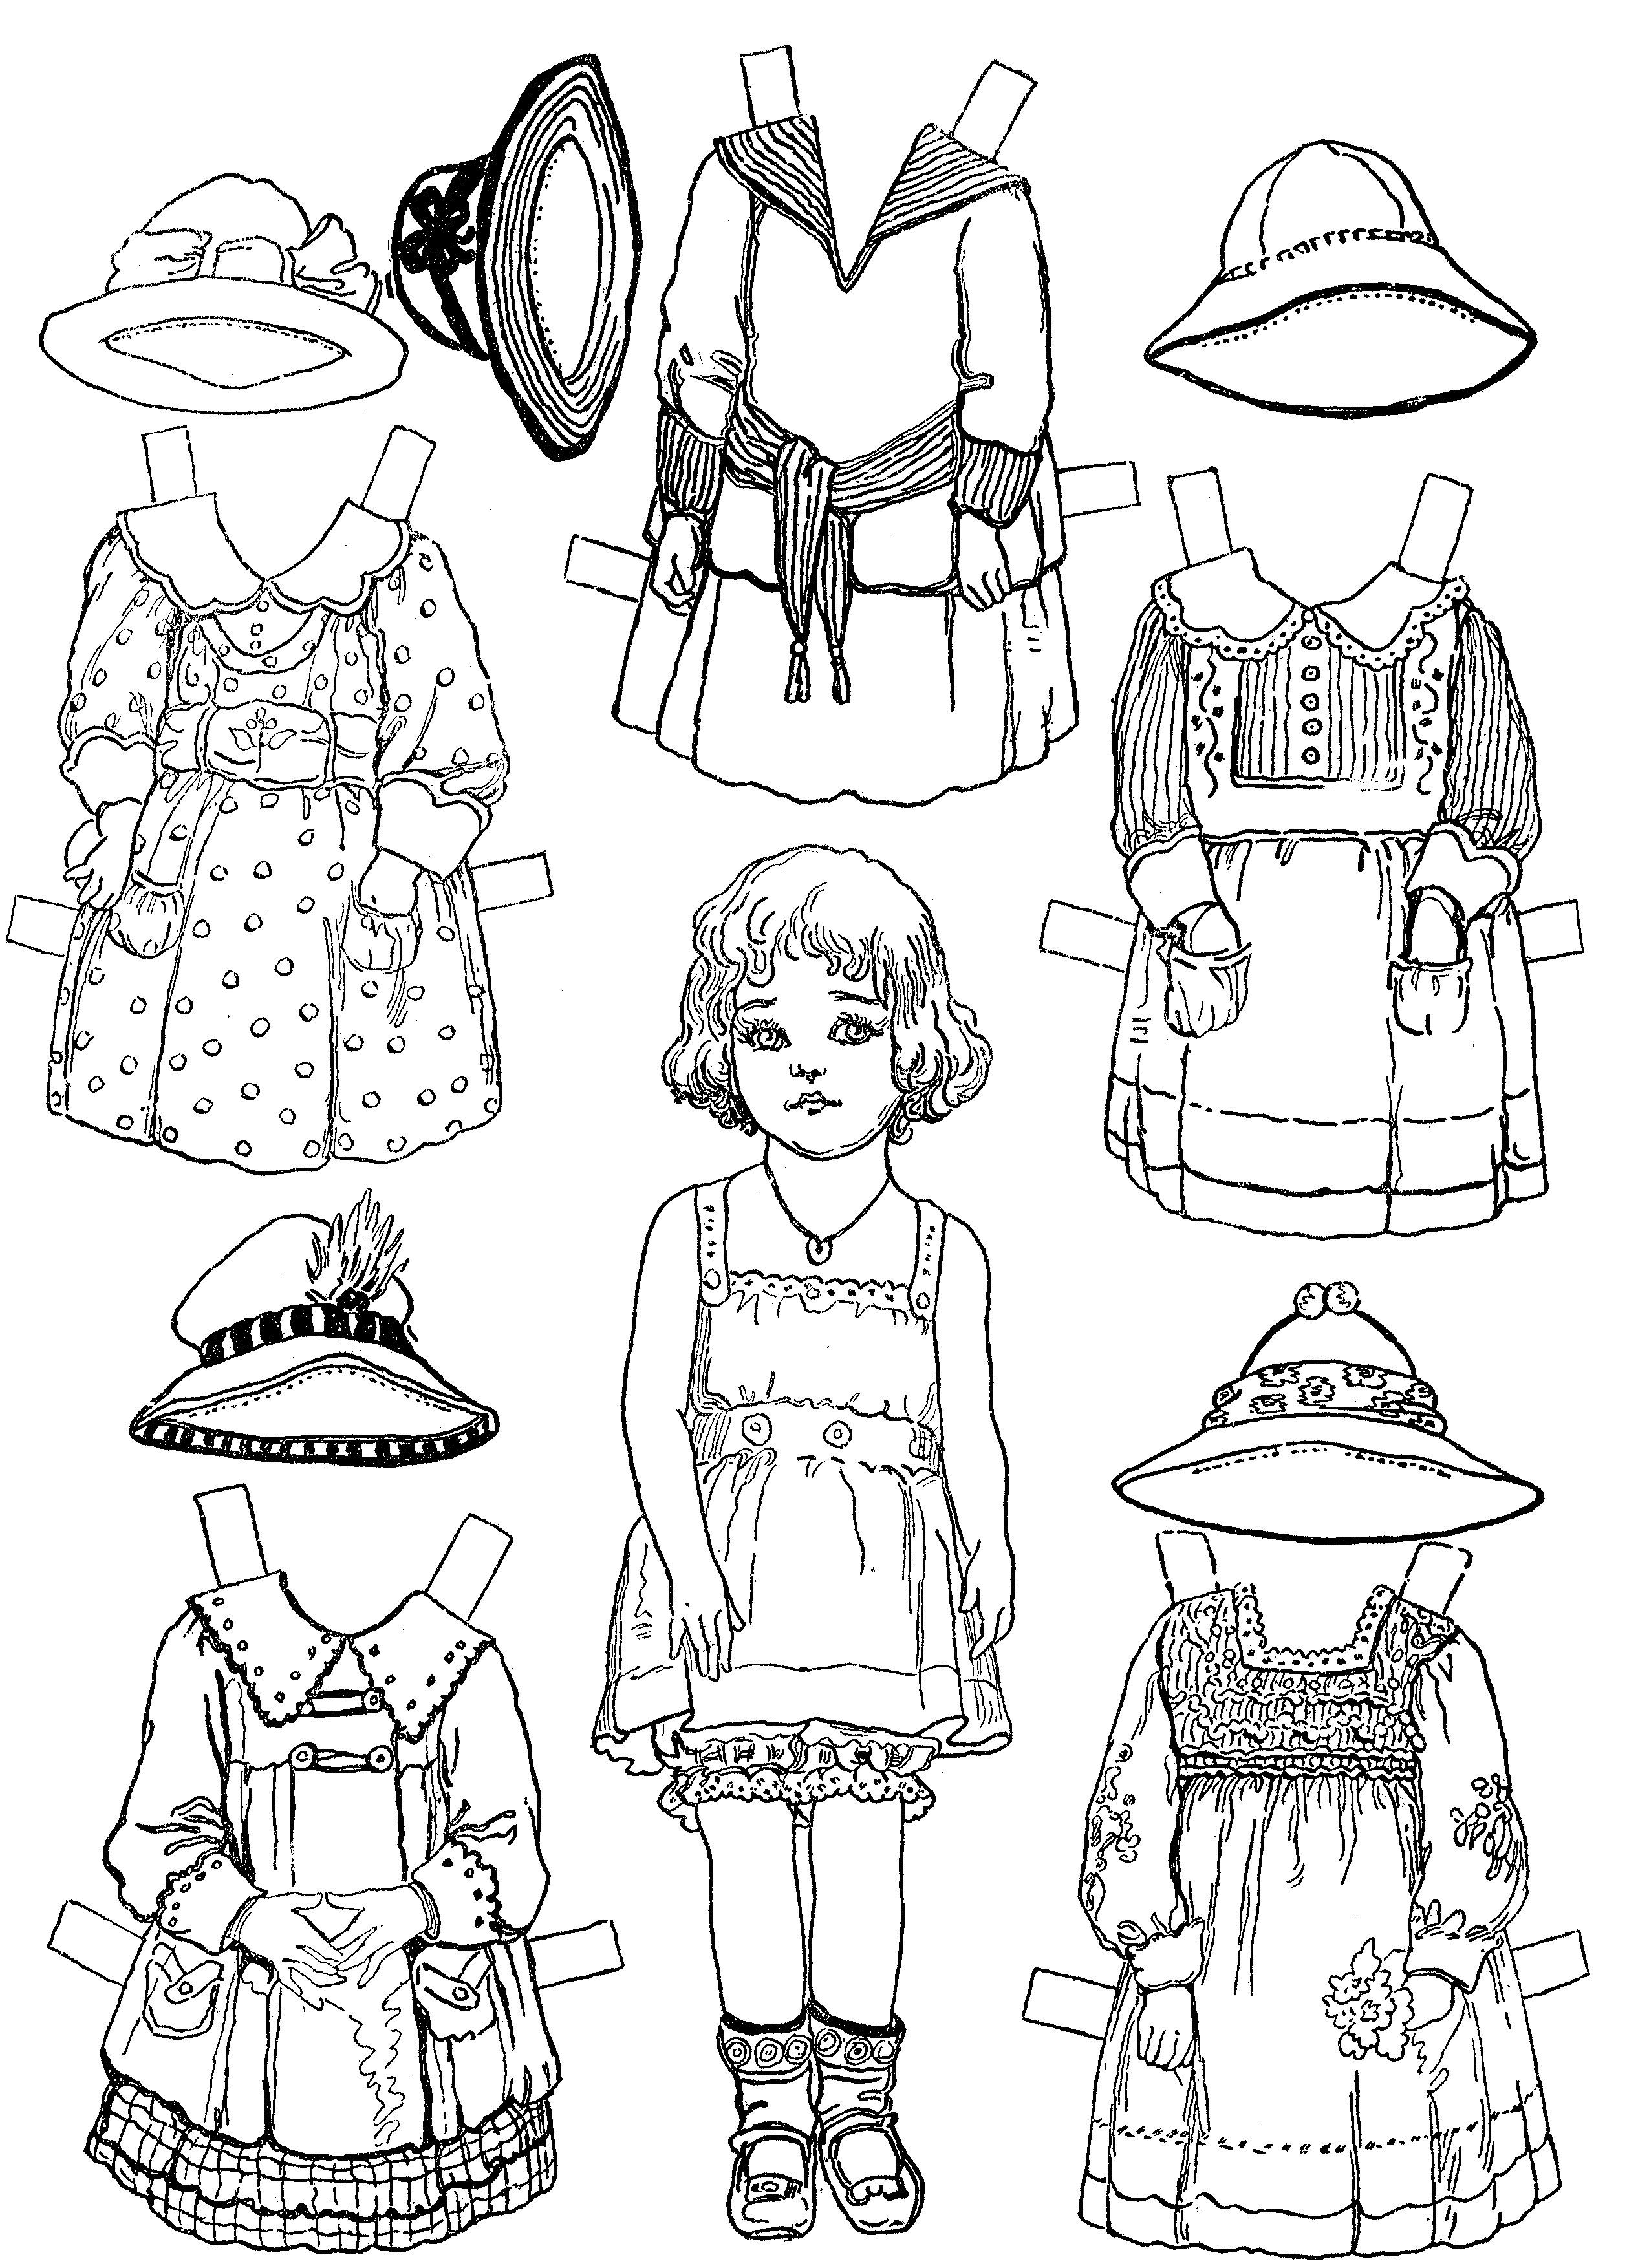 Paper Dolls - Free - Printable - Download | Color Your Own ...